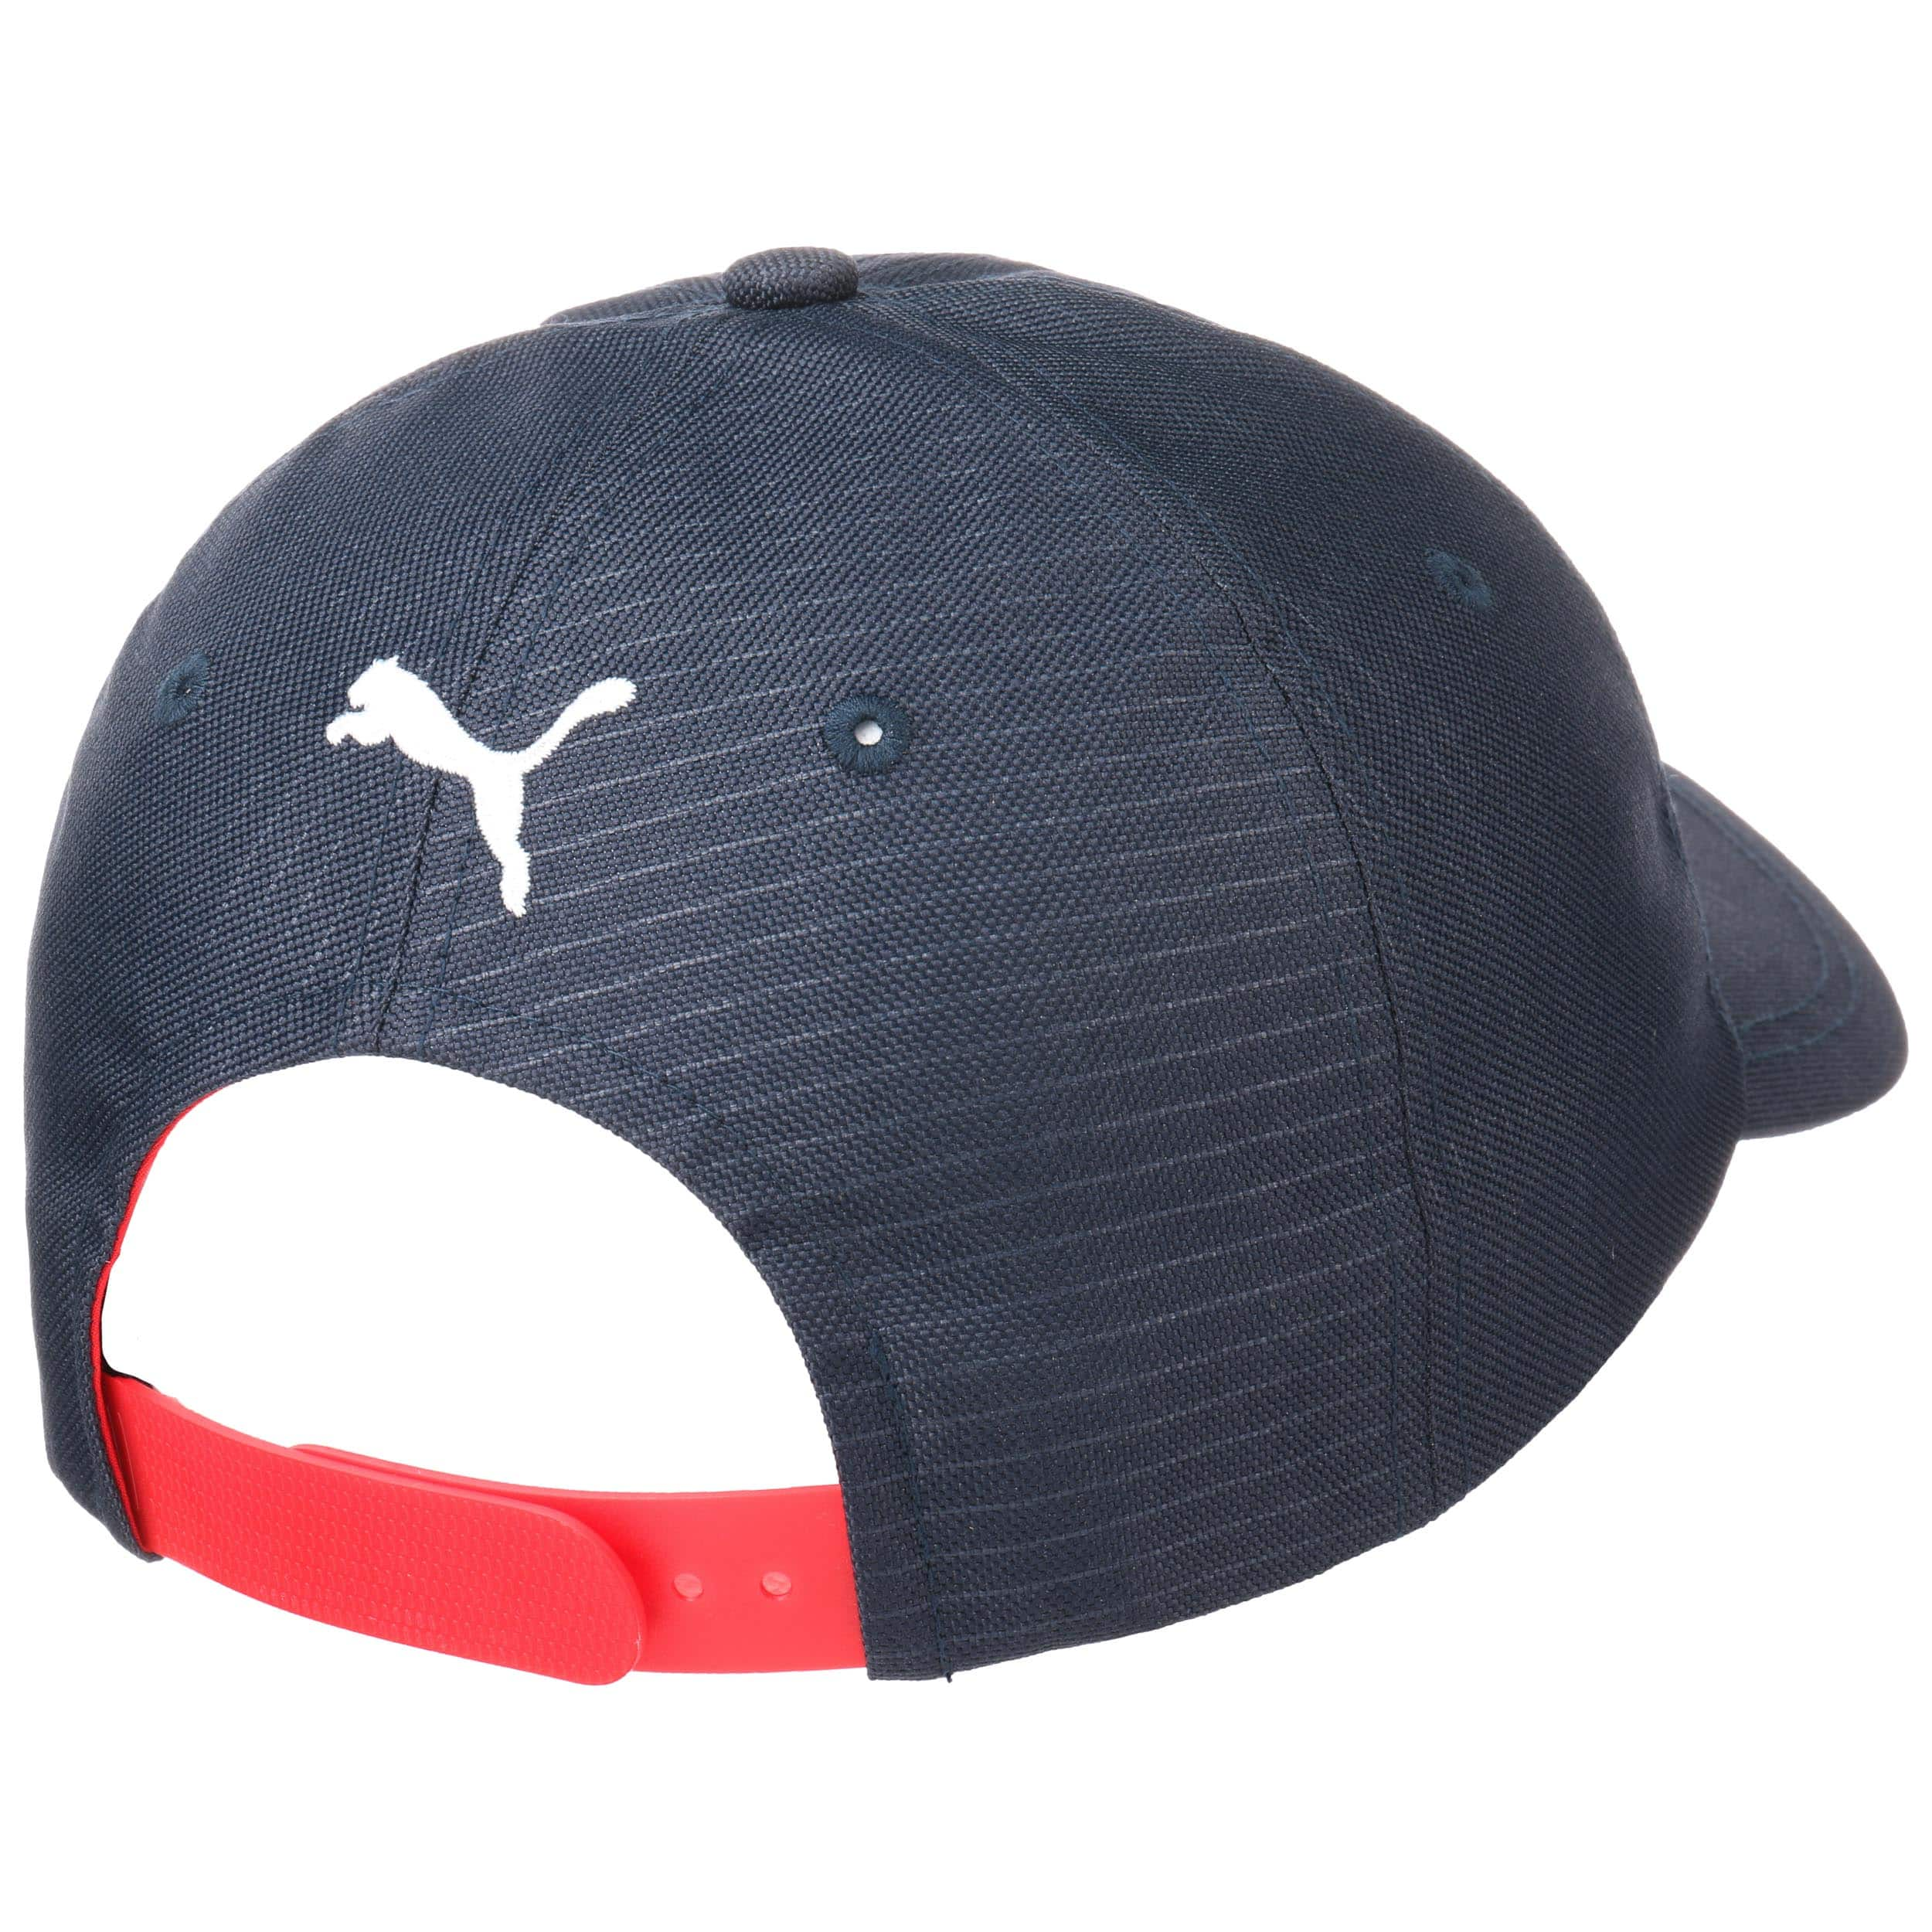 ... Gorra Red Bull Racing Lifestyle Curved by PUMA - azul oscuro 4 ... 86c0db93496